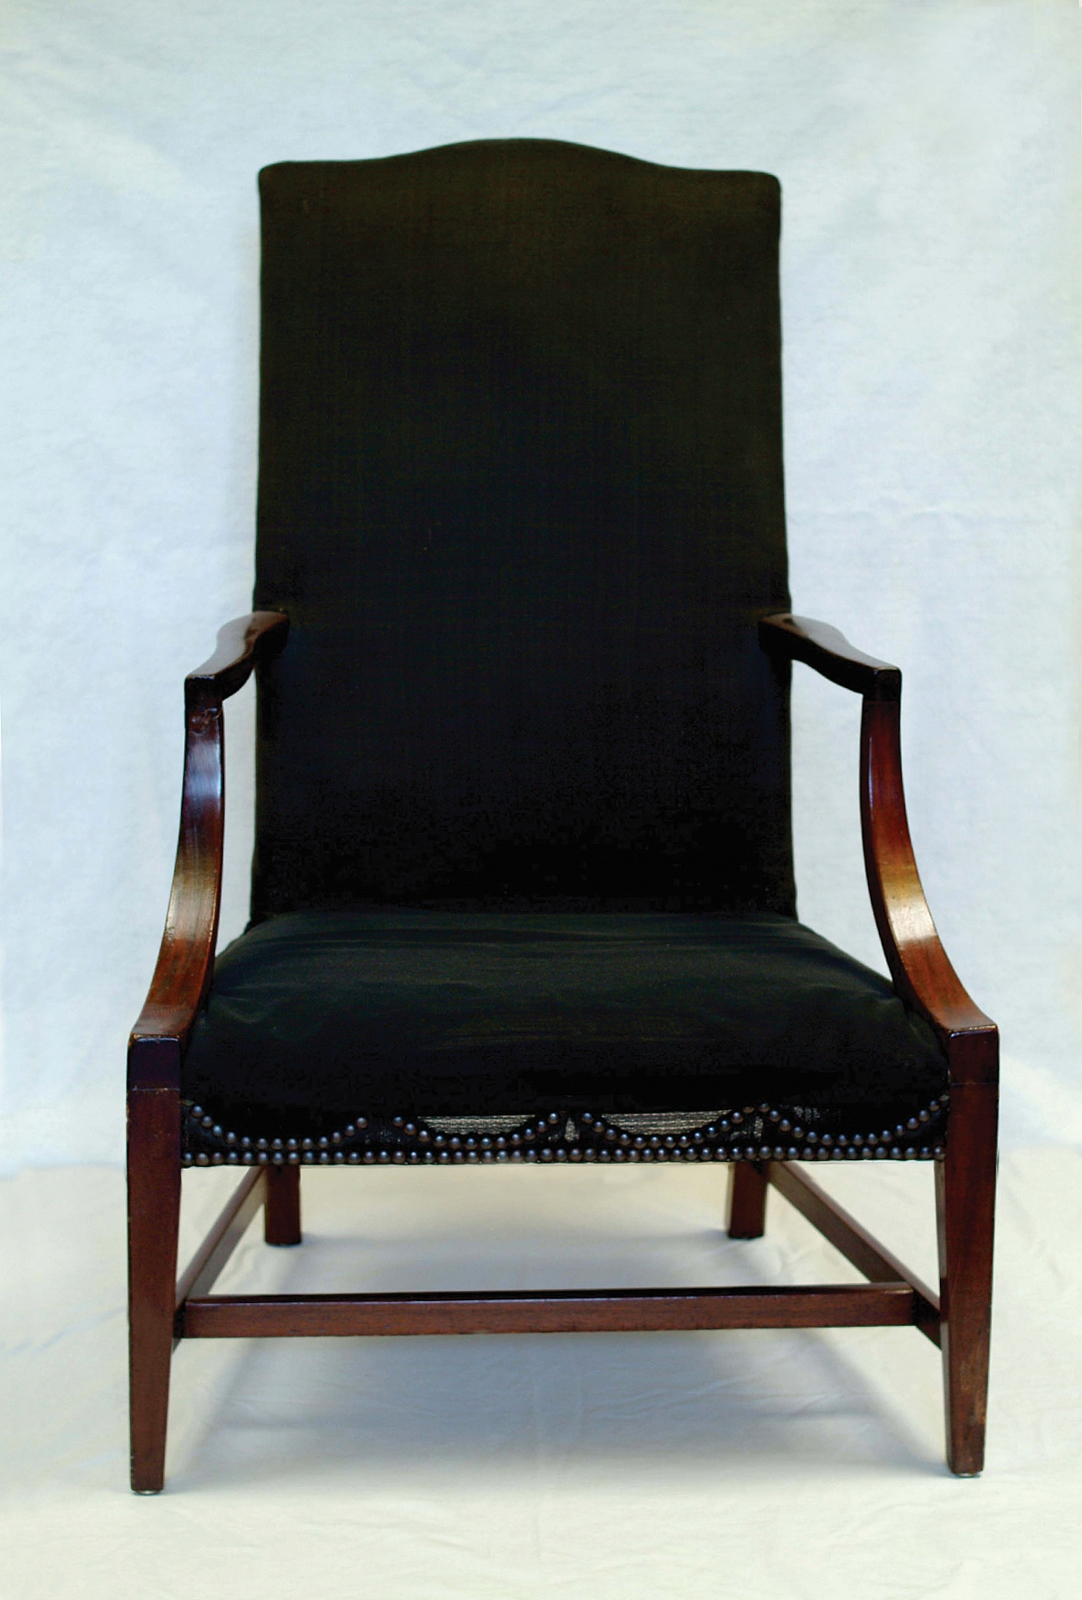 Lolling Chair, Ca. 1790